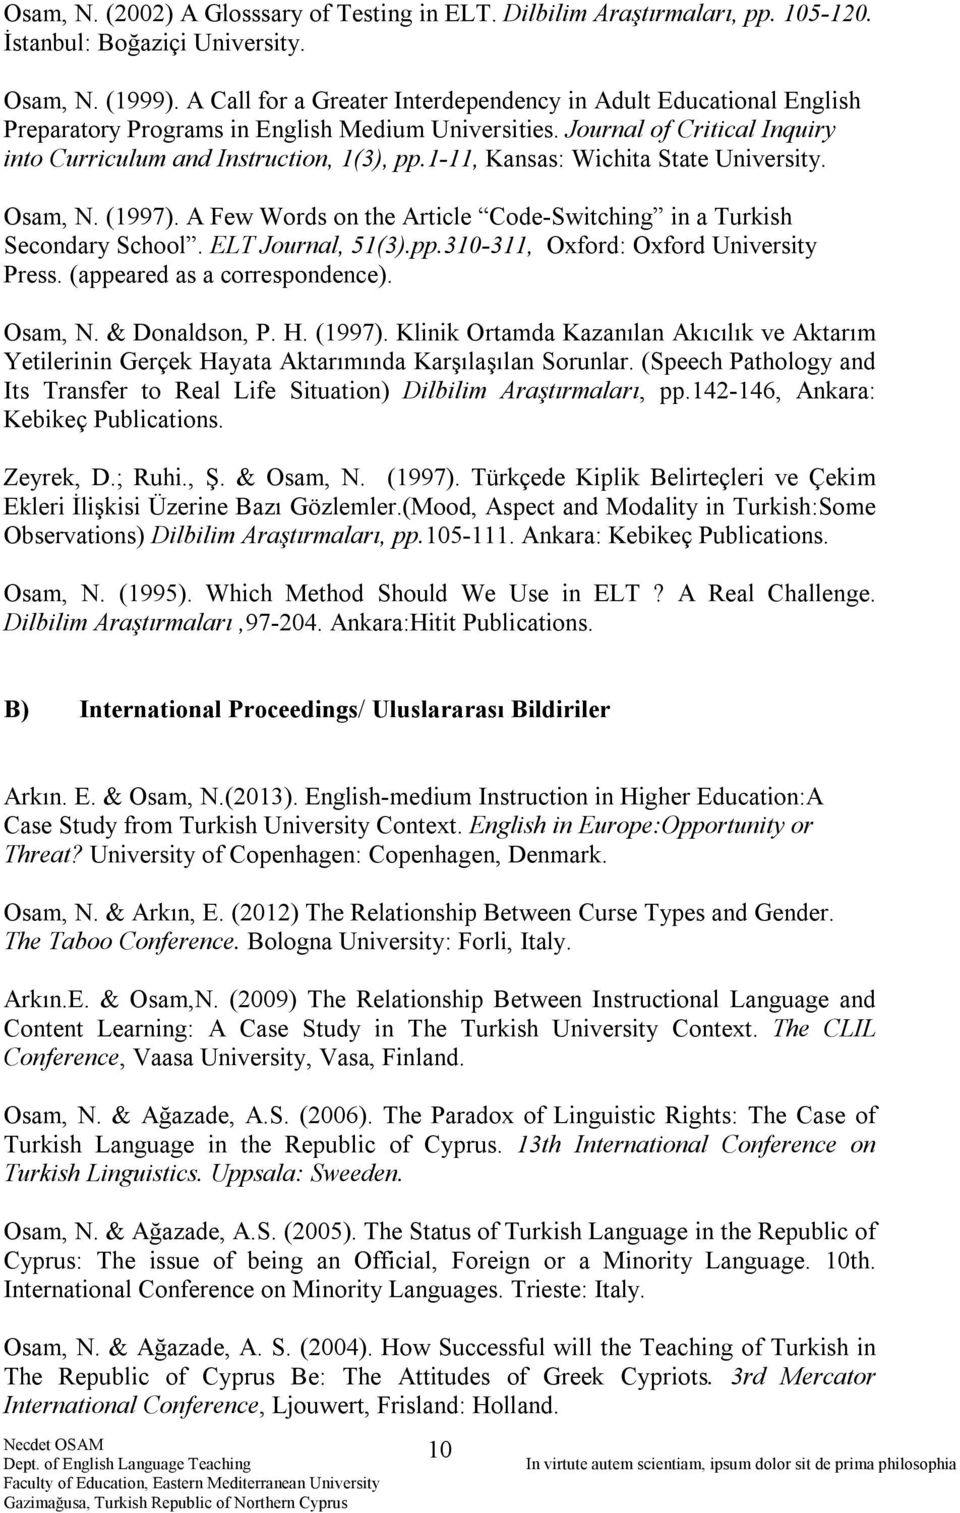 1-11, Kansas: Wichita State University. Osam, N. (1997). A Few Words on the Article Code-Switching in a Turkish Secondary School. ELT Journal, 51(3).pp.310-311, Oxford: Oxford University Press.